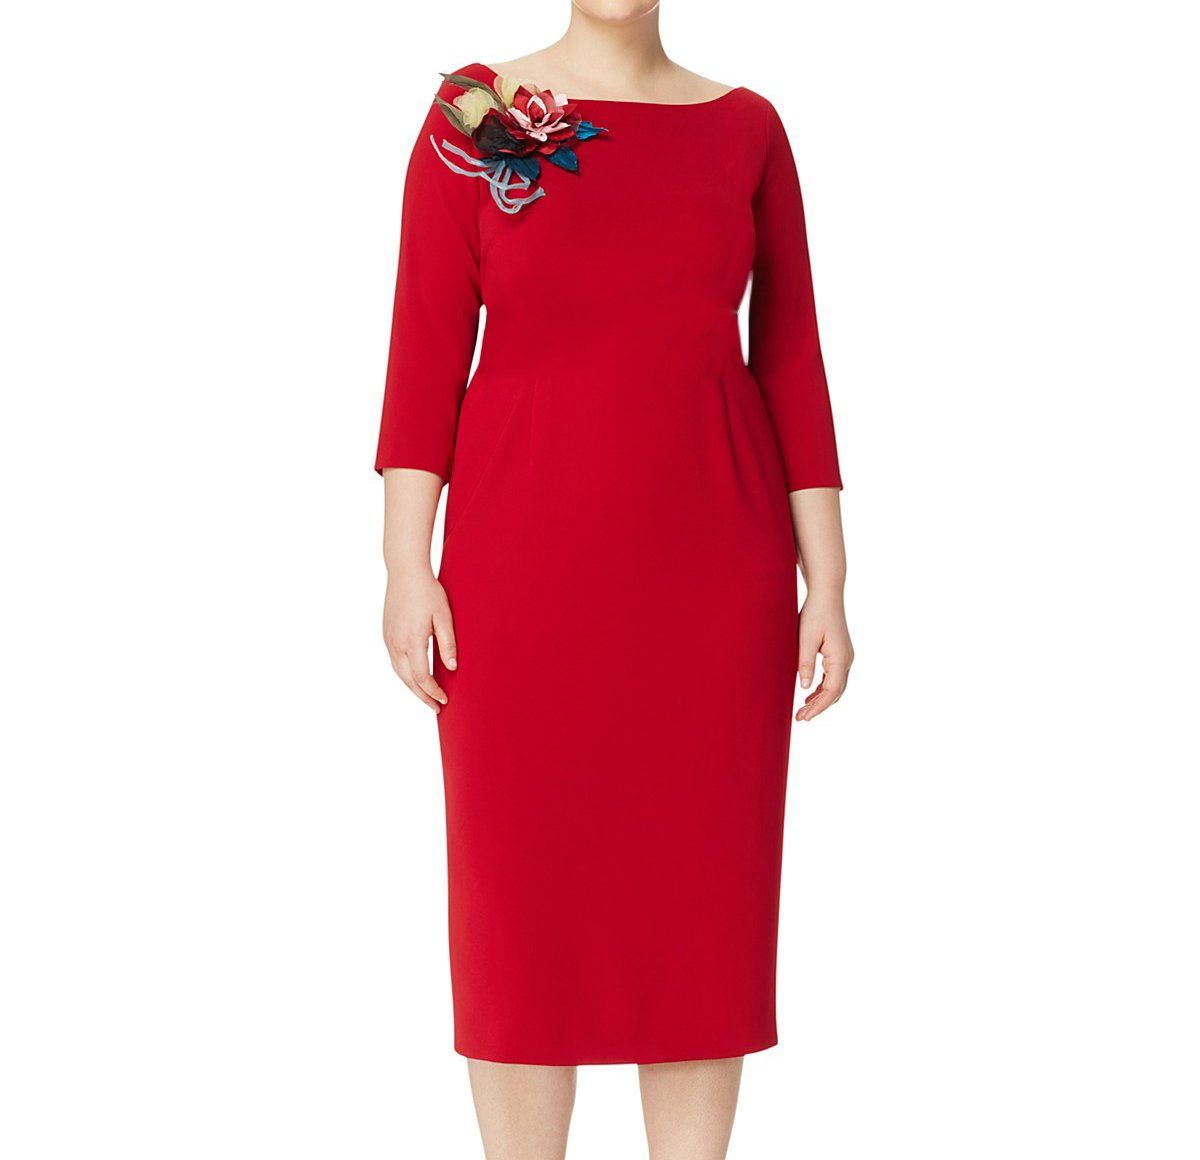 Marina Rinaldi Women's Daisy Sheath Dress W/Brooch, Red, 16W/25